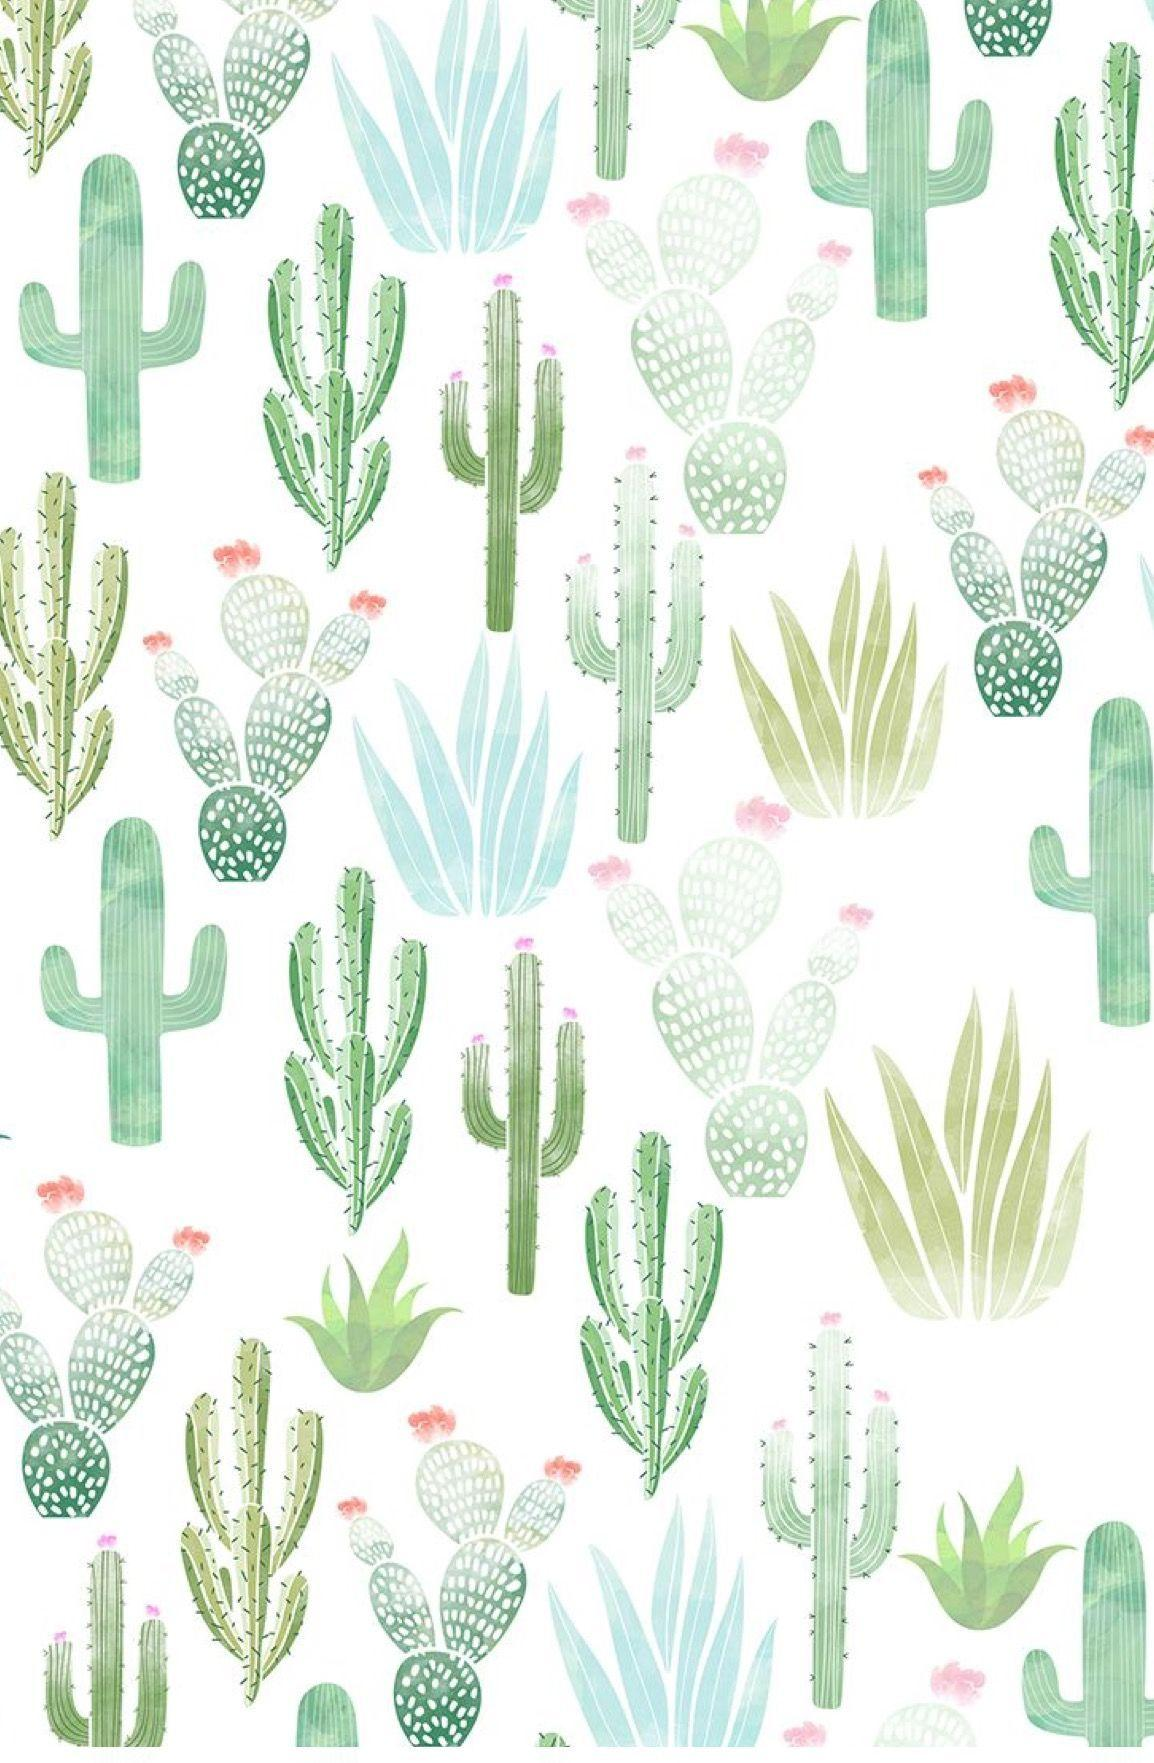 Cute Aesthetic Cactus Wallpapers Wallpaper Cave #cactus aesthetic #my aesthetics #aesthetic pictures #golderrie #aesthetics #cactus. cute aesthetic cactus wallpapers